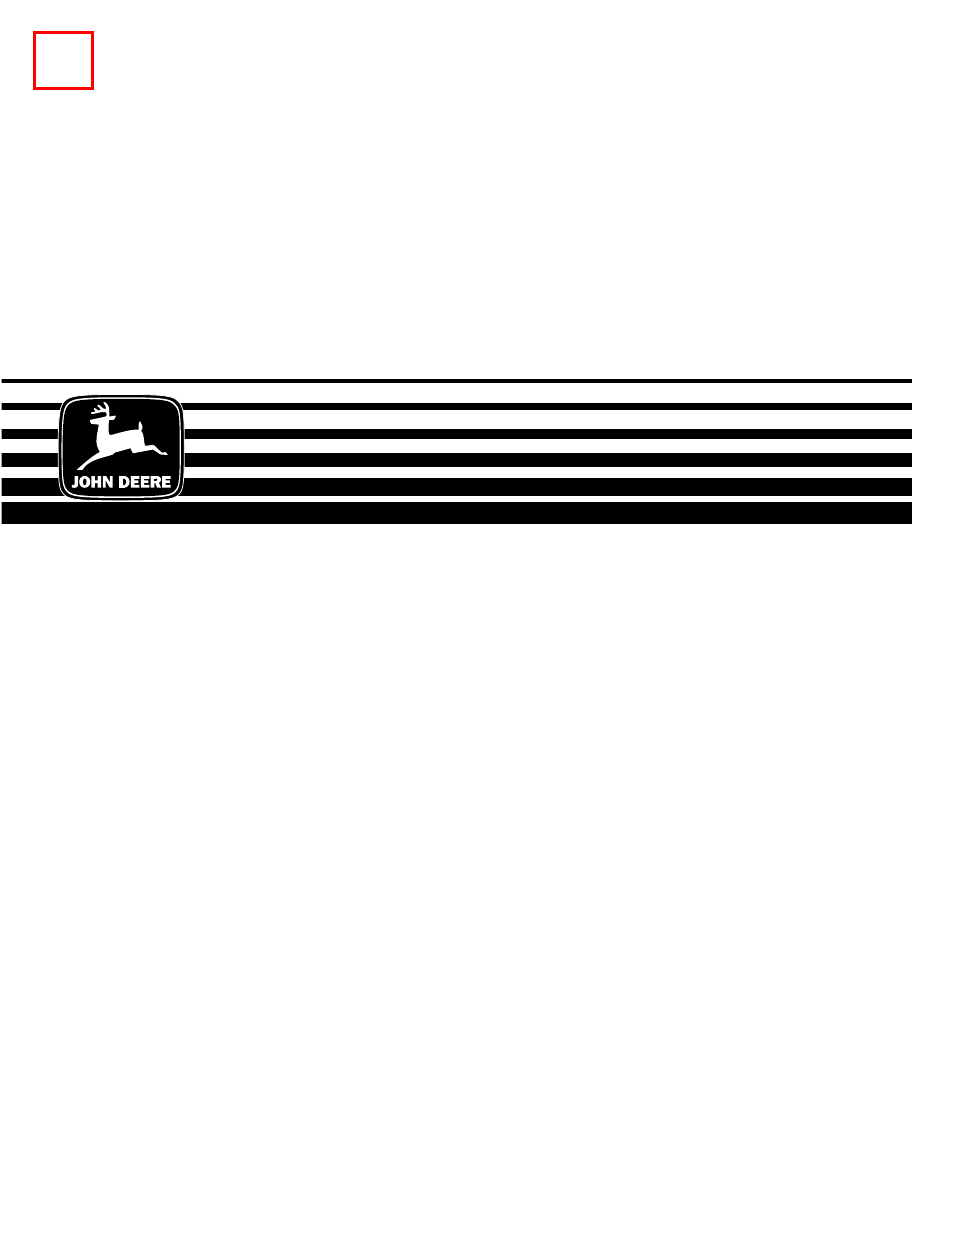 john deere stx38 page1 stx38 wiring diagram pdf stx38 wiring diagram pdf at nearapp.co